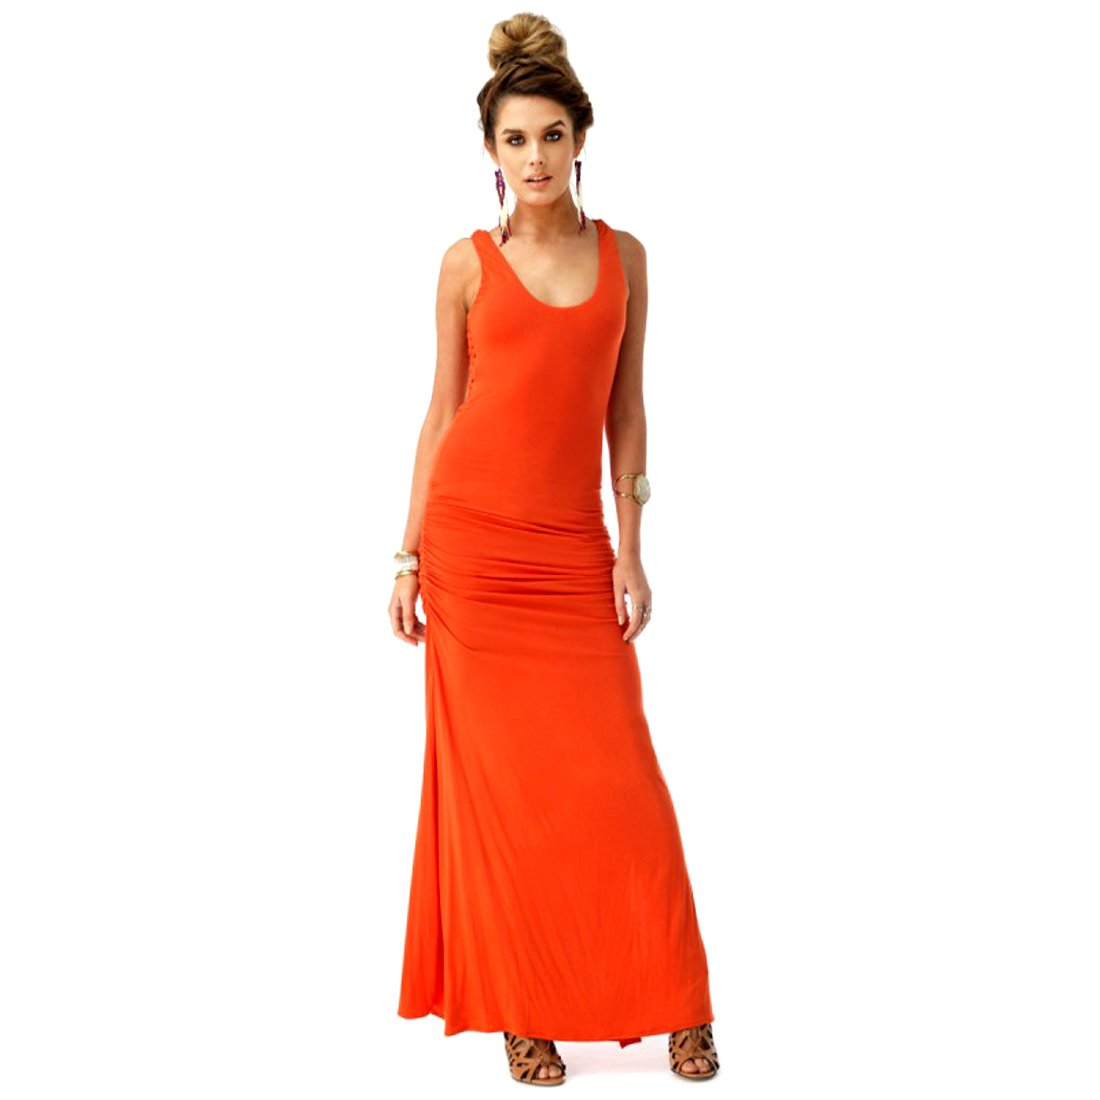 Sky Collection Coral Pheakkley Maxi Dress w/Crochet & Racer Style Back, Small by Crazy4Bling